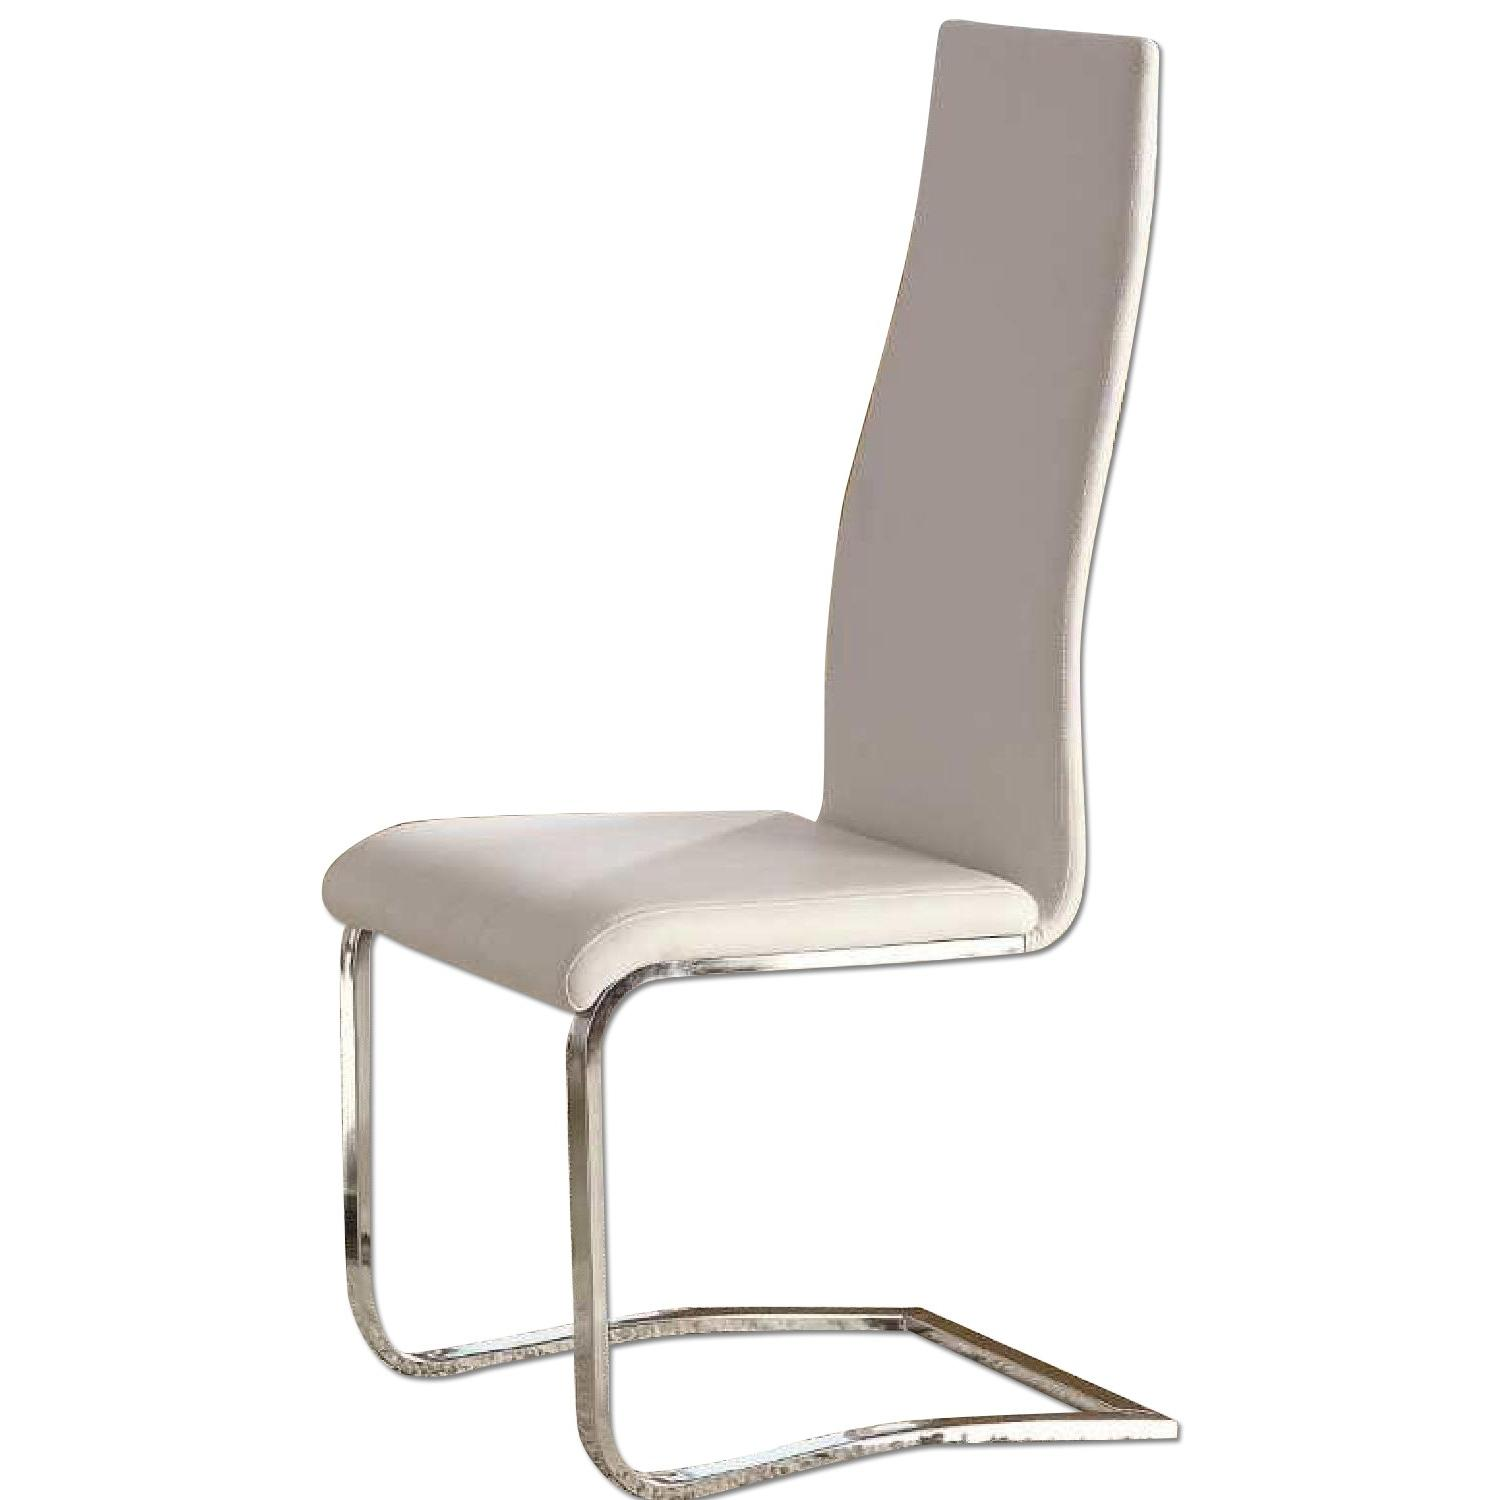 Modern White Dining Chairs w/ Solid Metal Legs - image-0